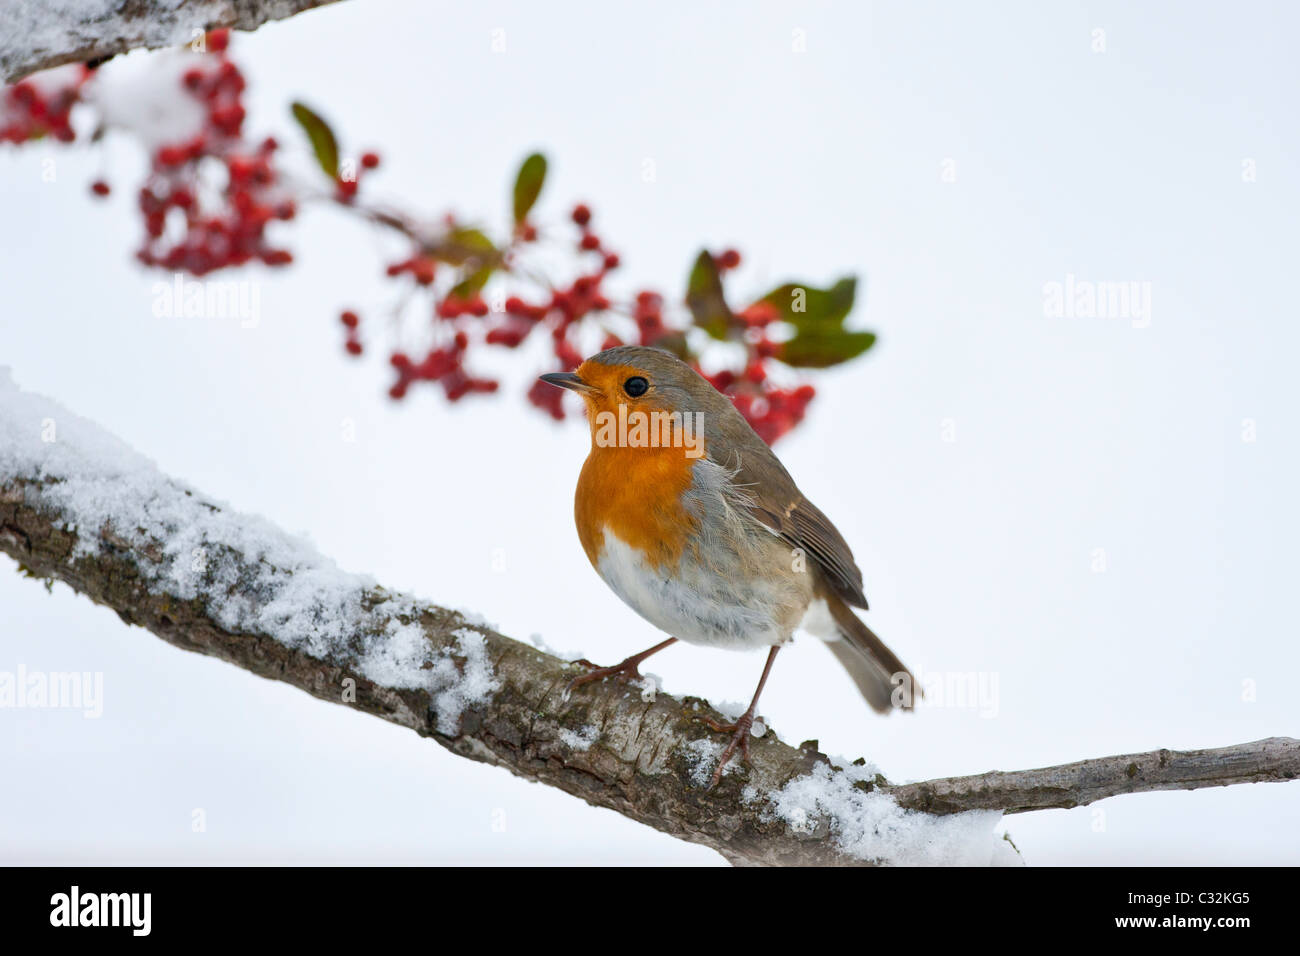 Robin perches by snowy slope and seasonal berries during winter in The Cotswolds, UK - Stock Image